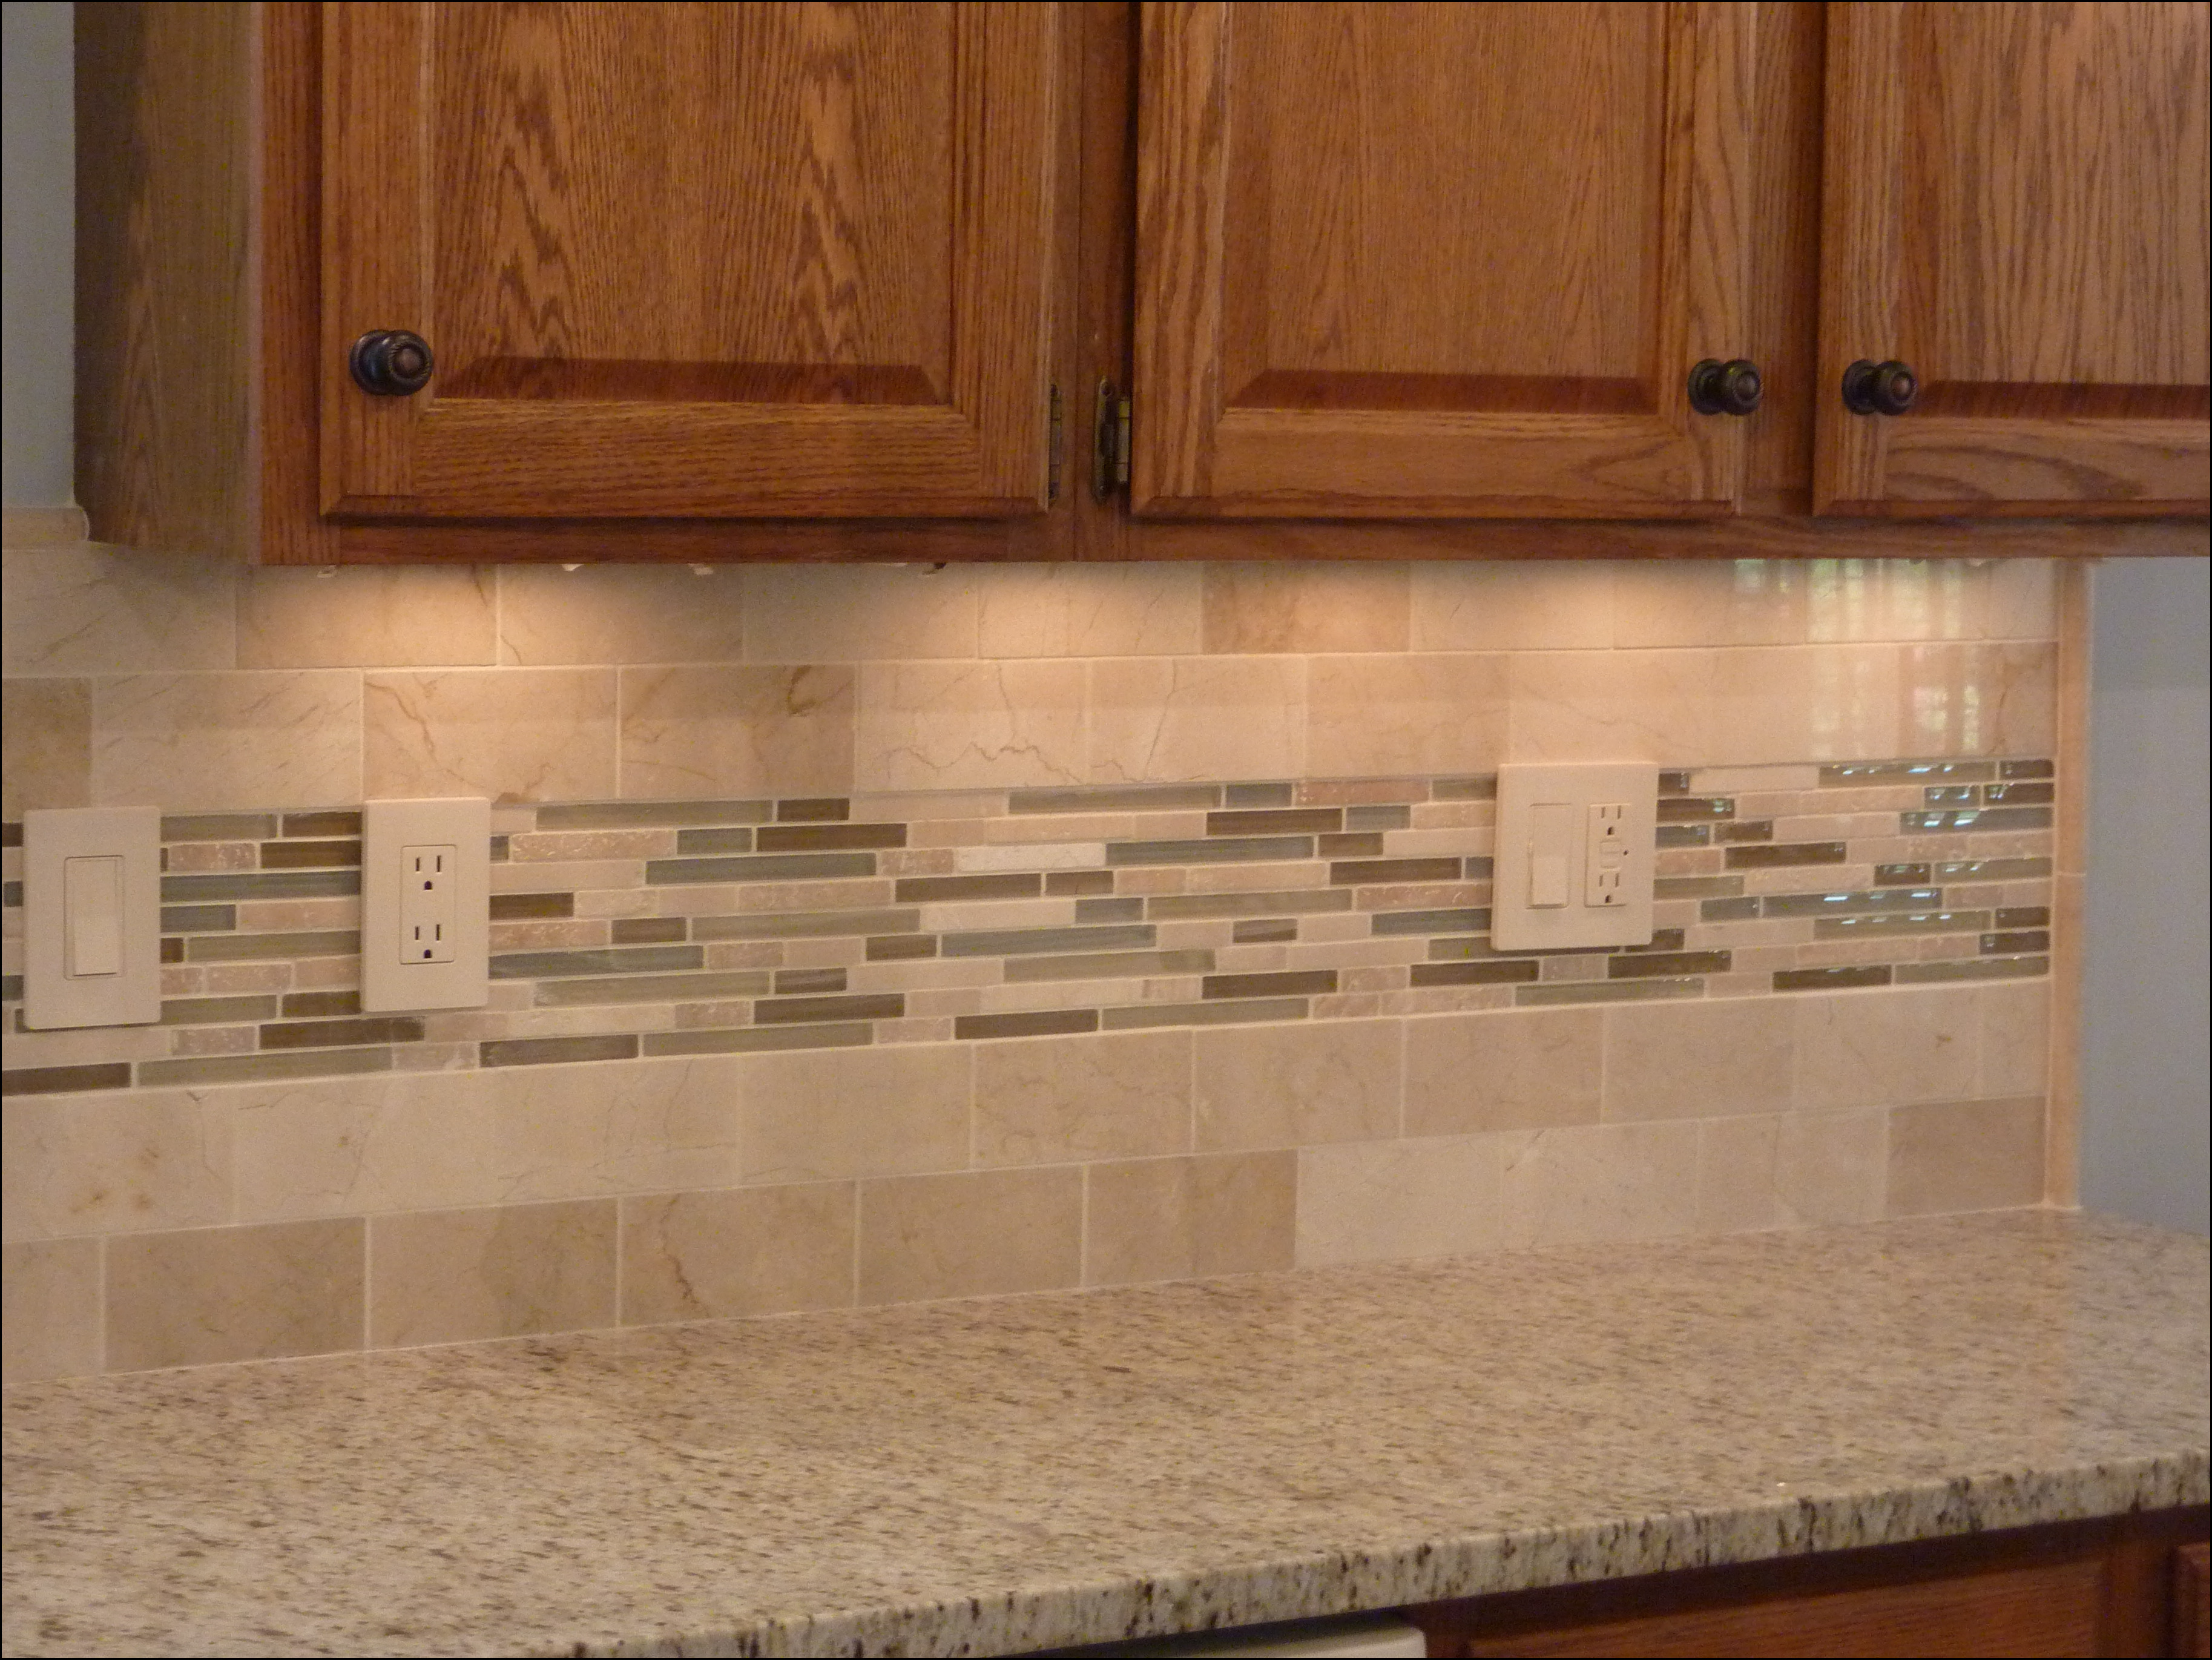 Ceramic tile patterns for kitchen floors 53 finest kitchen tile subway tile this is designs to aid you for kitchens that pause point of wall tiles pictures how to floor and take into account designs interior style dailygadgetfo Gallery